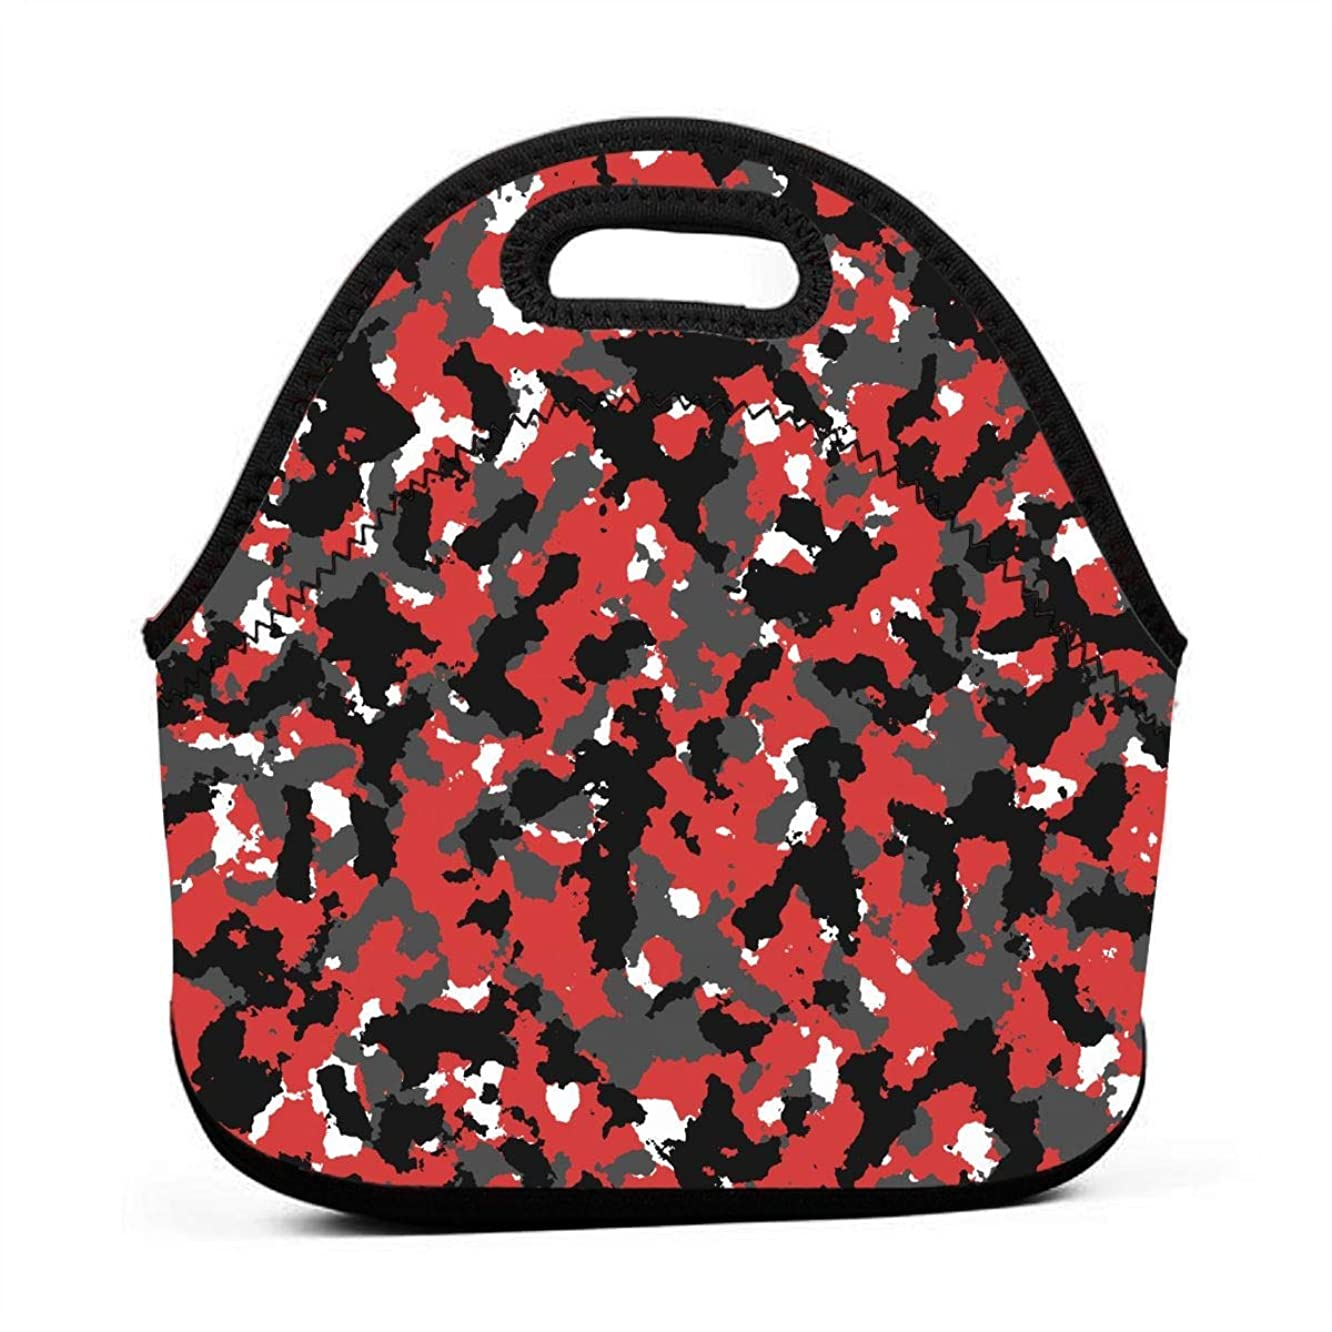 Jake Fashion Shop Neoprene Bloodshot Camo Red Urban Portable Lunch Bag Carry Case Tote with Zipper Box Container Bags Picnic Outdoor Travel Fashionable Handbag Pouch for Women Men Kids Girls